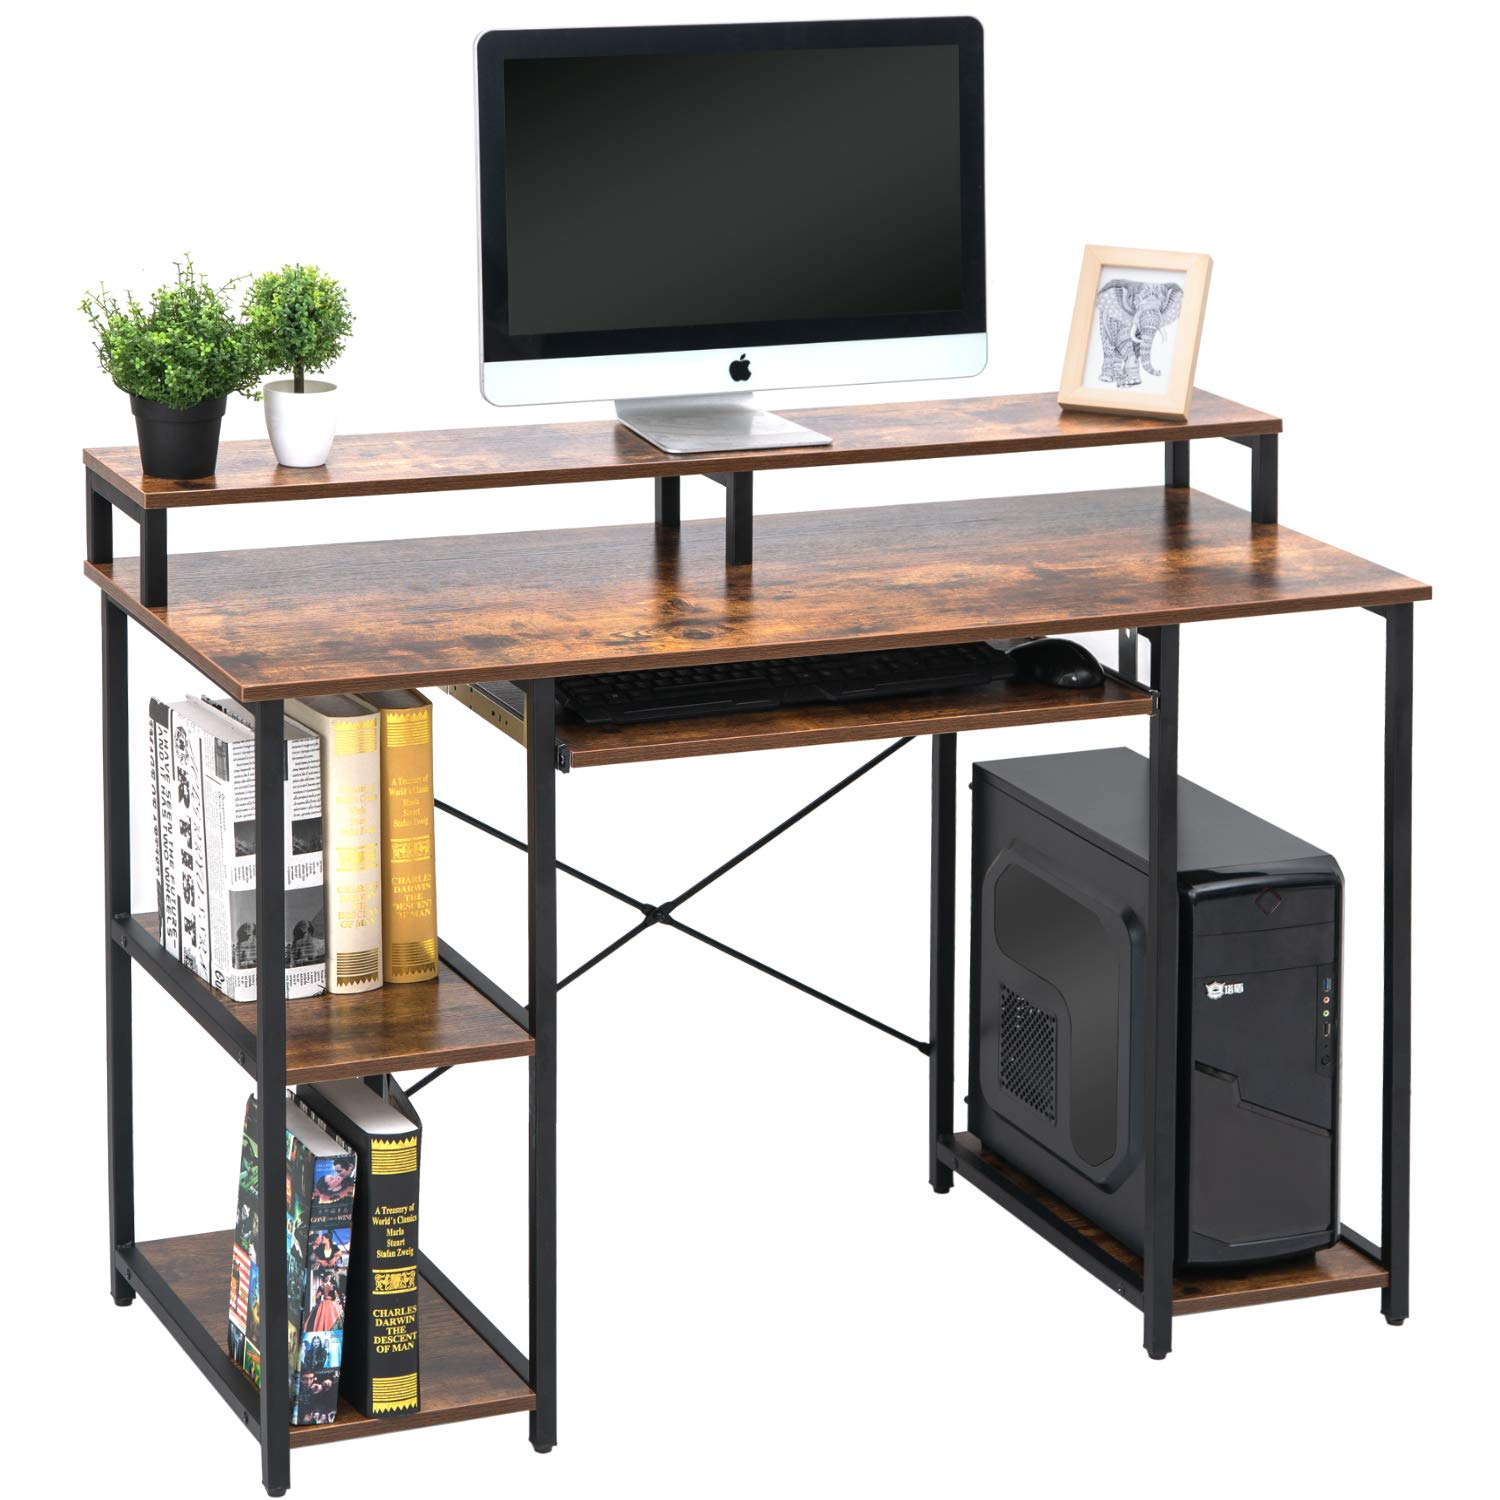 TOPSKY 47'' Computer Desk with Storage Shelves/Keyboard Tray/Monitor Stand Study Table for Home Office (Industrial Style) by TOPSKY